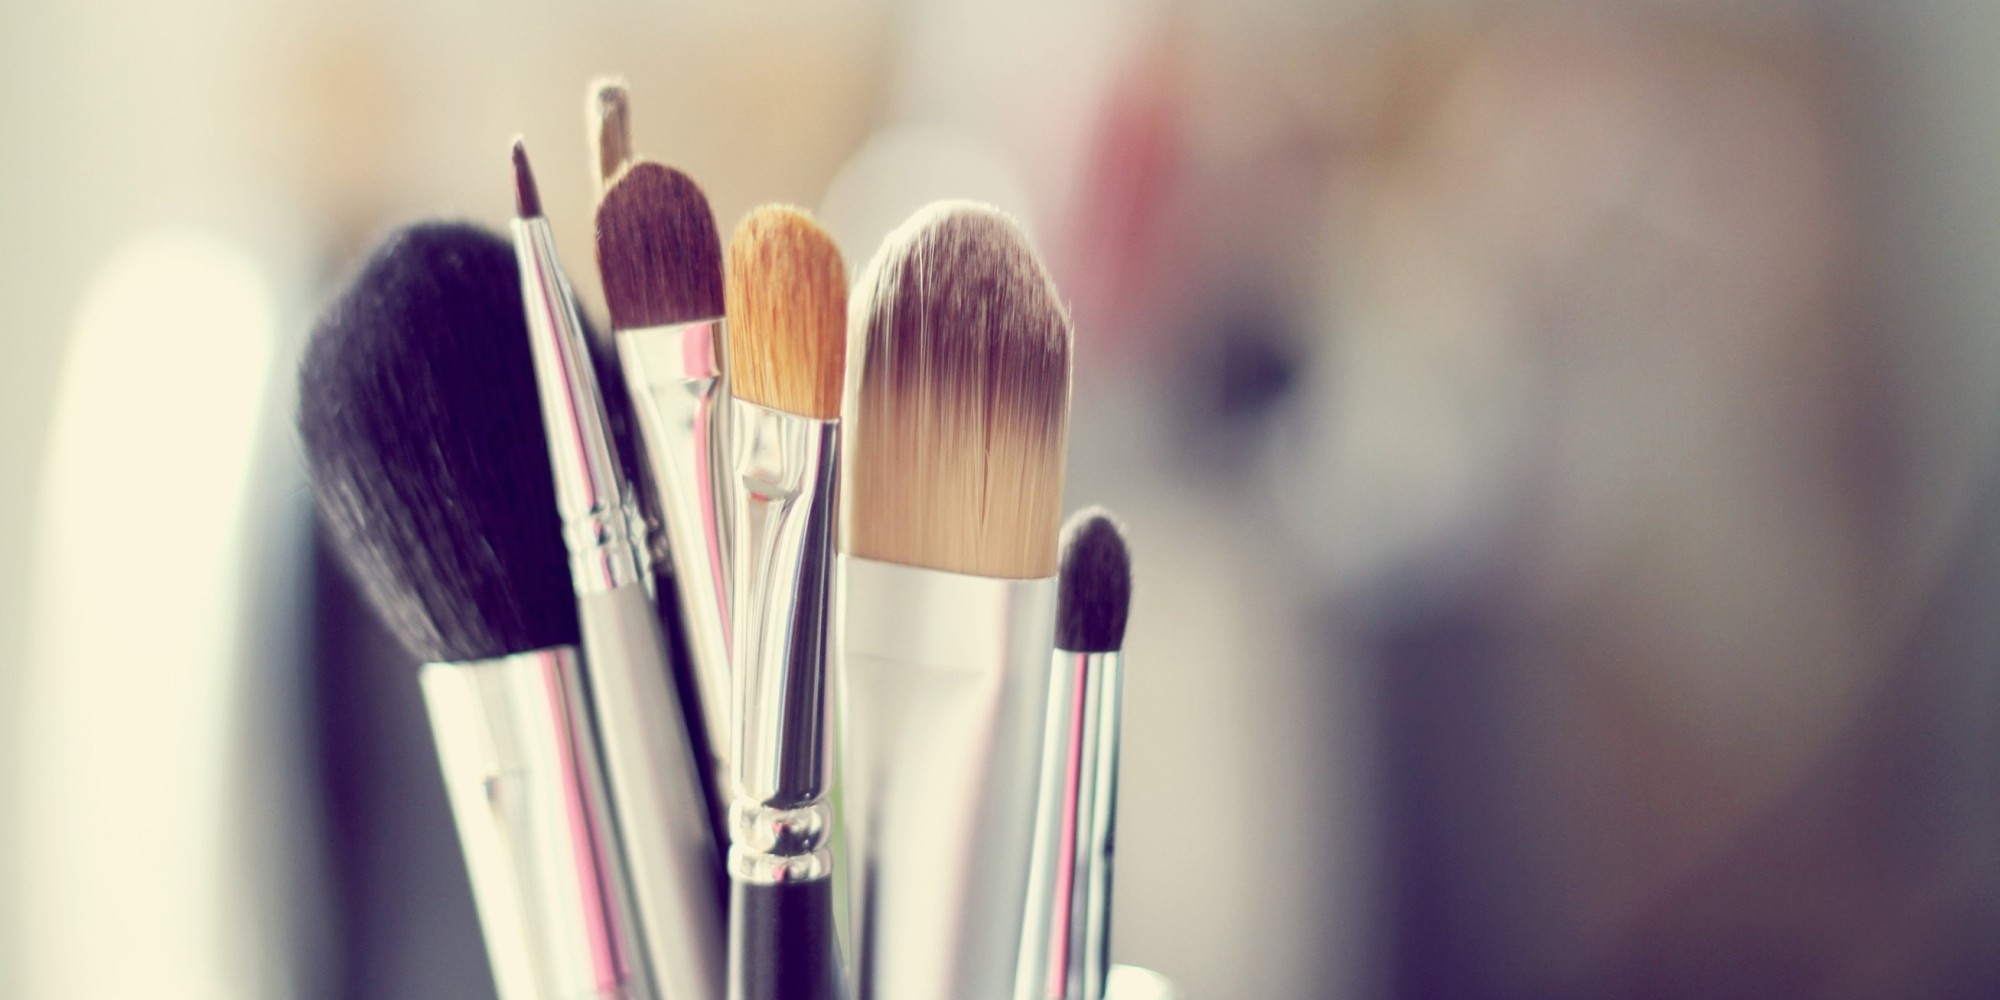 The 5 Makeup Brushes You Should Own & How To Use Them Makeup Brushes Tumblr